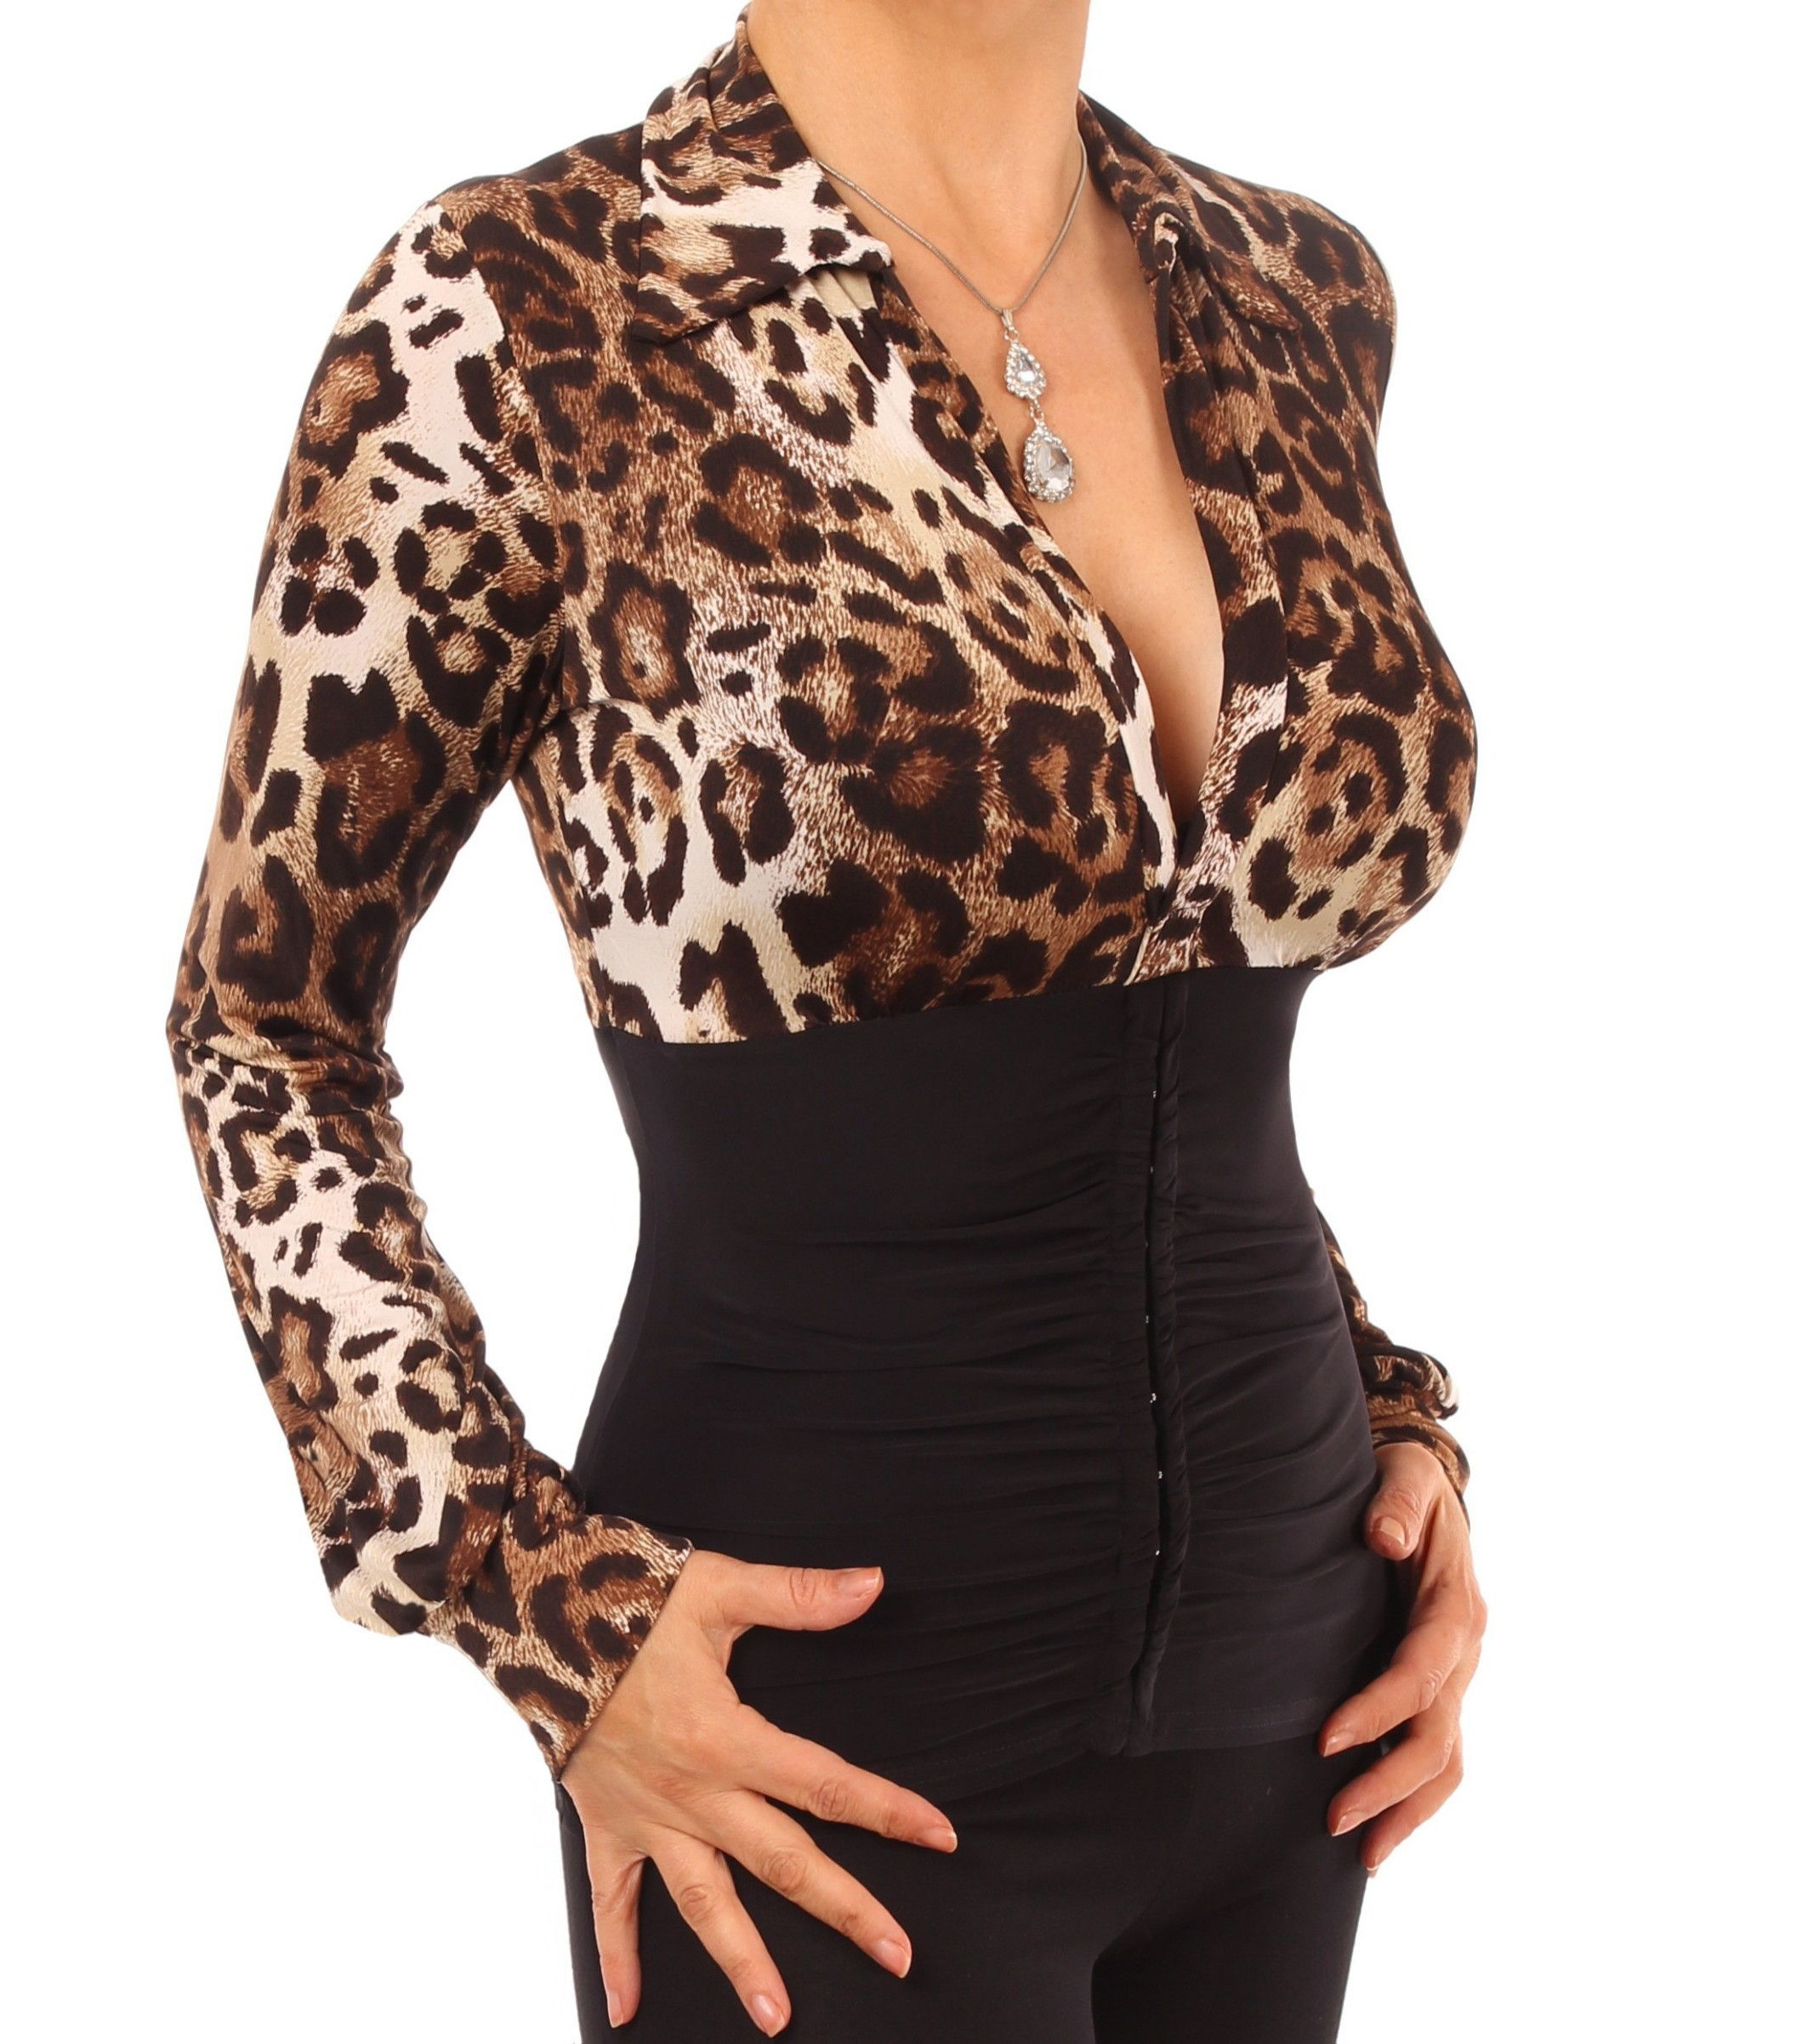 Animal print corset stretchy top stretchy tops tops